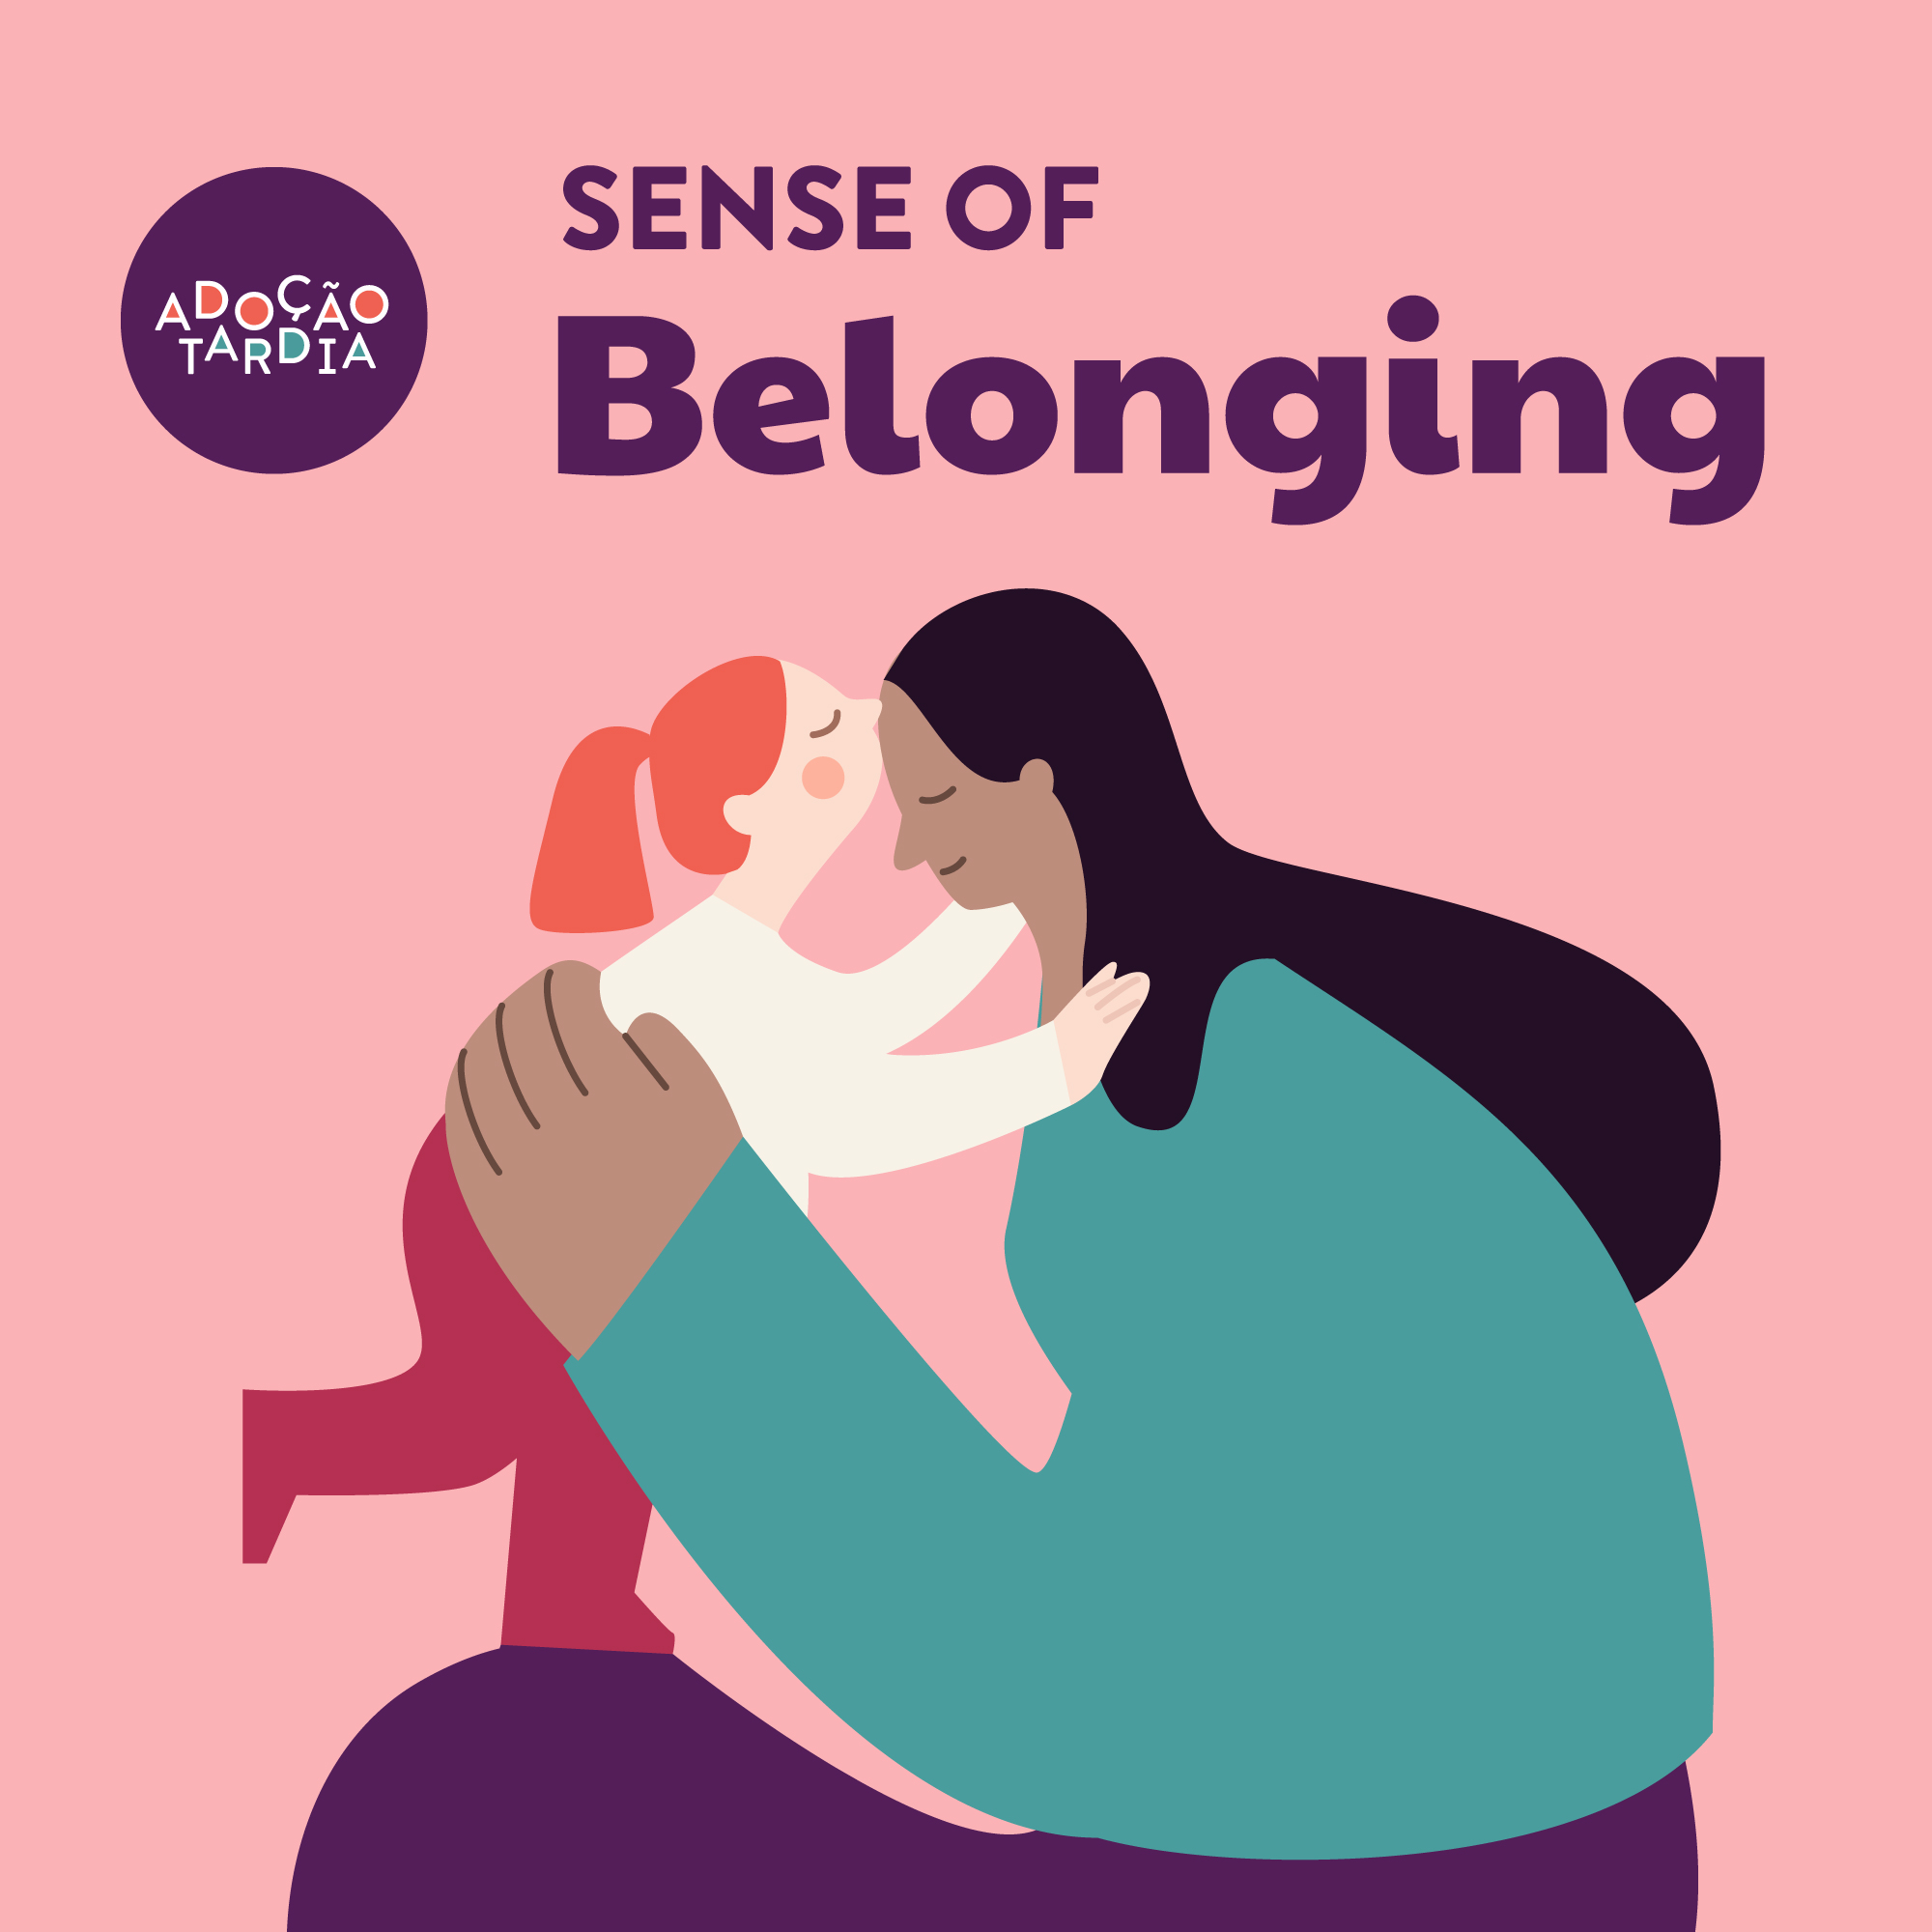 sense-of-belonging-2